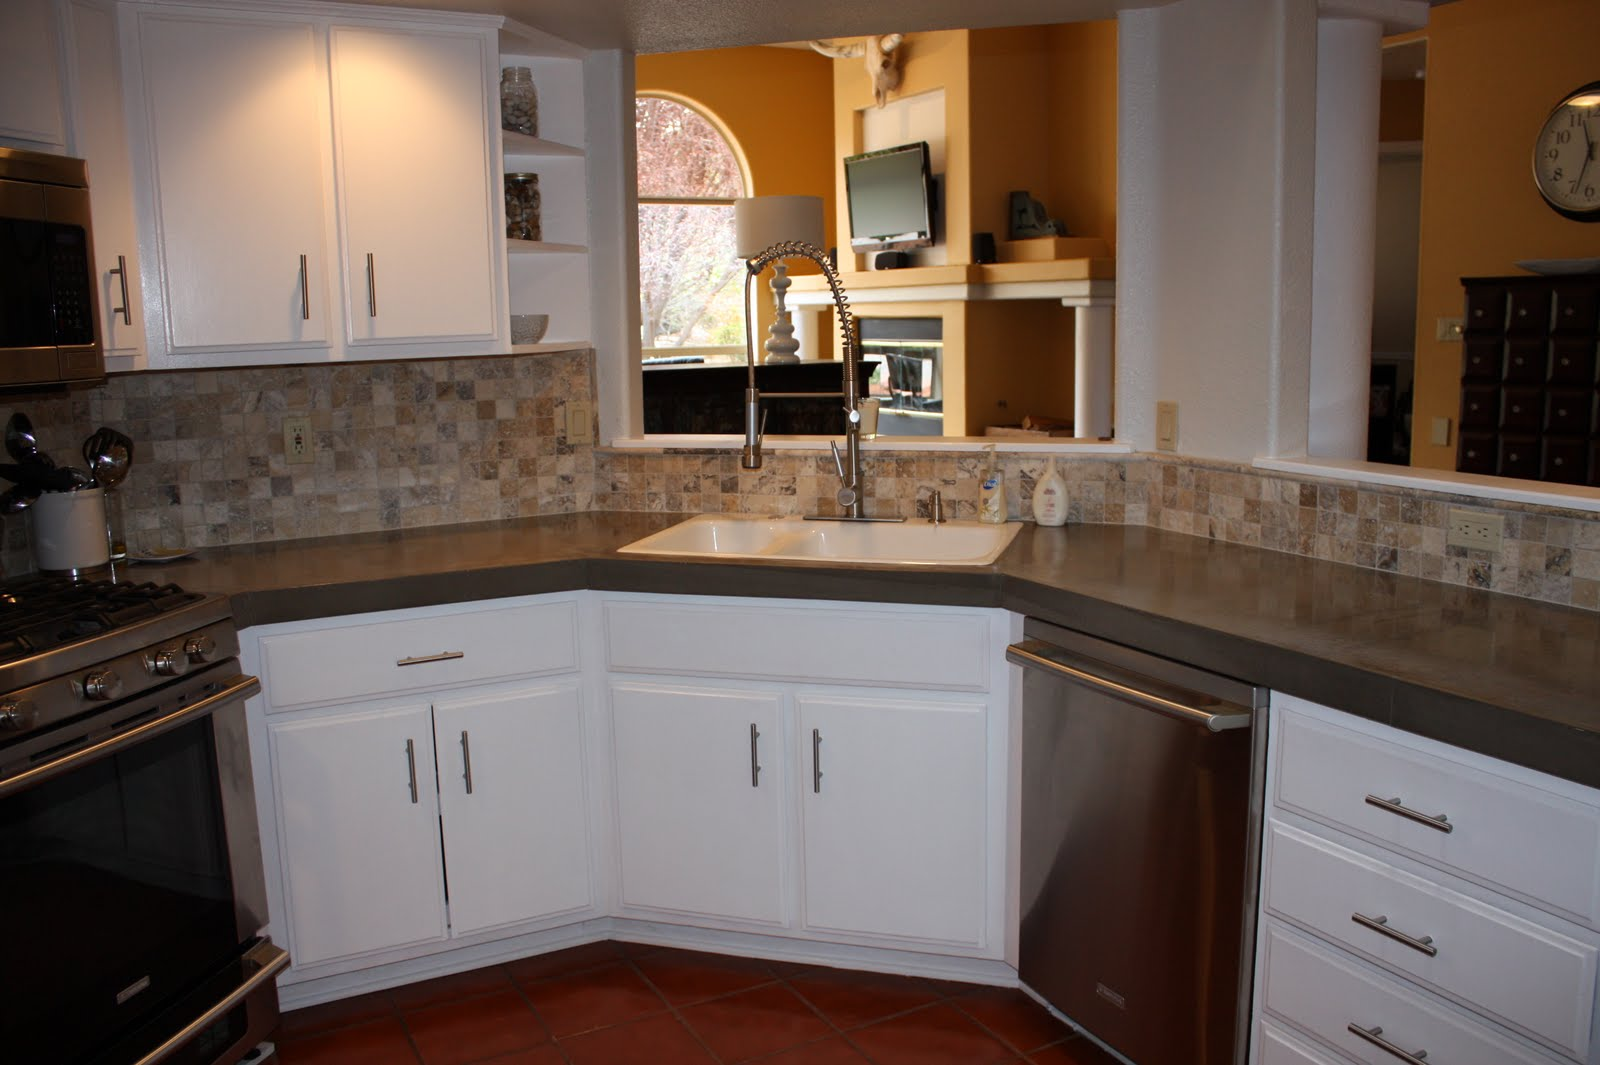 Finished Concrete Countertops Remodelaholic Quick Install Of Concrete Countertops